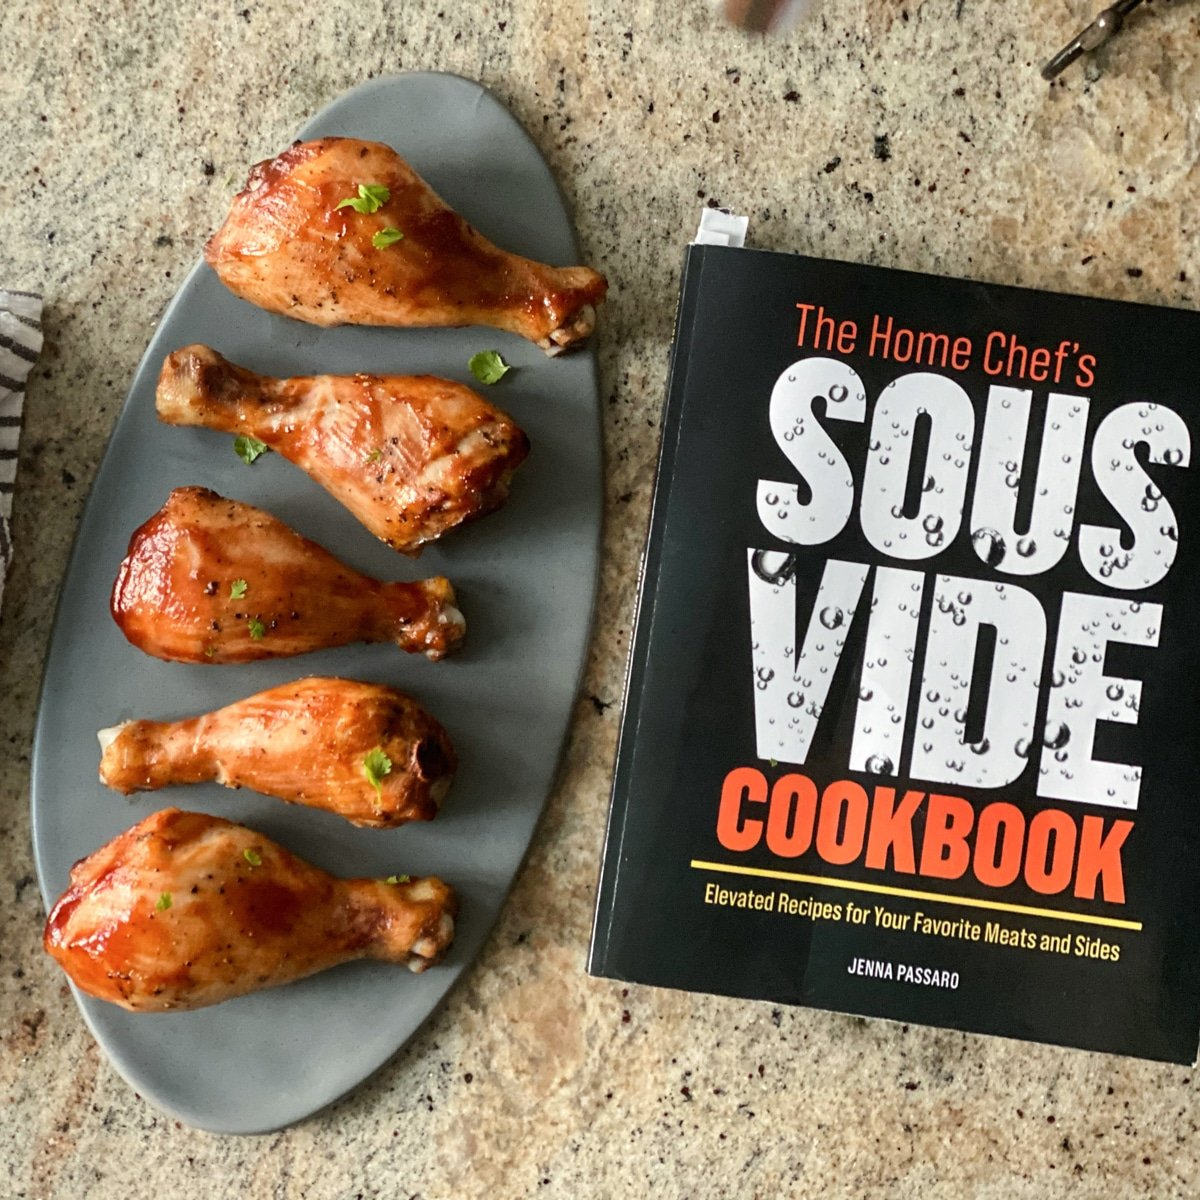 Cooked chicken legs on gray oval plate next to cookbook